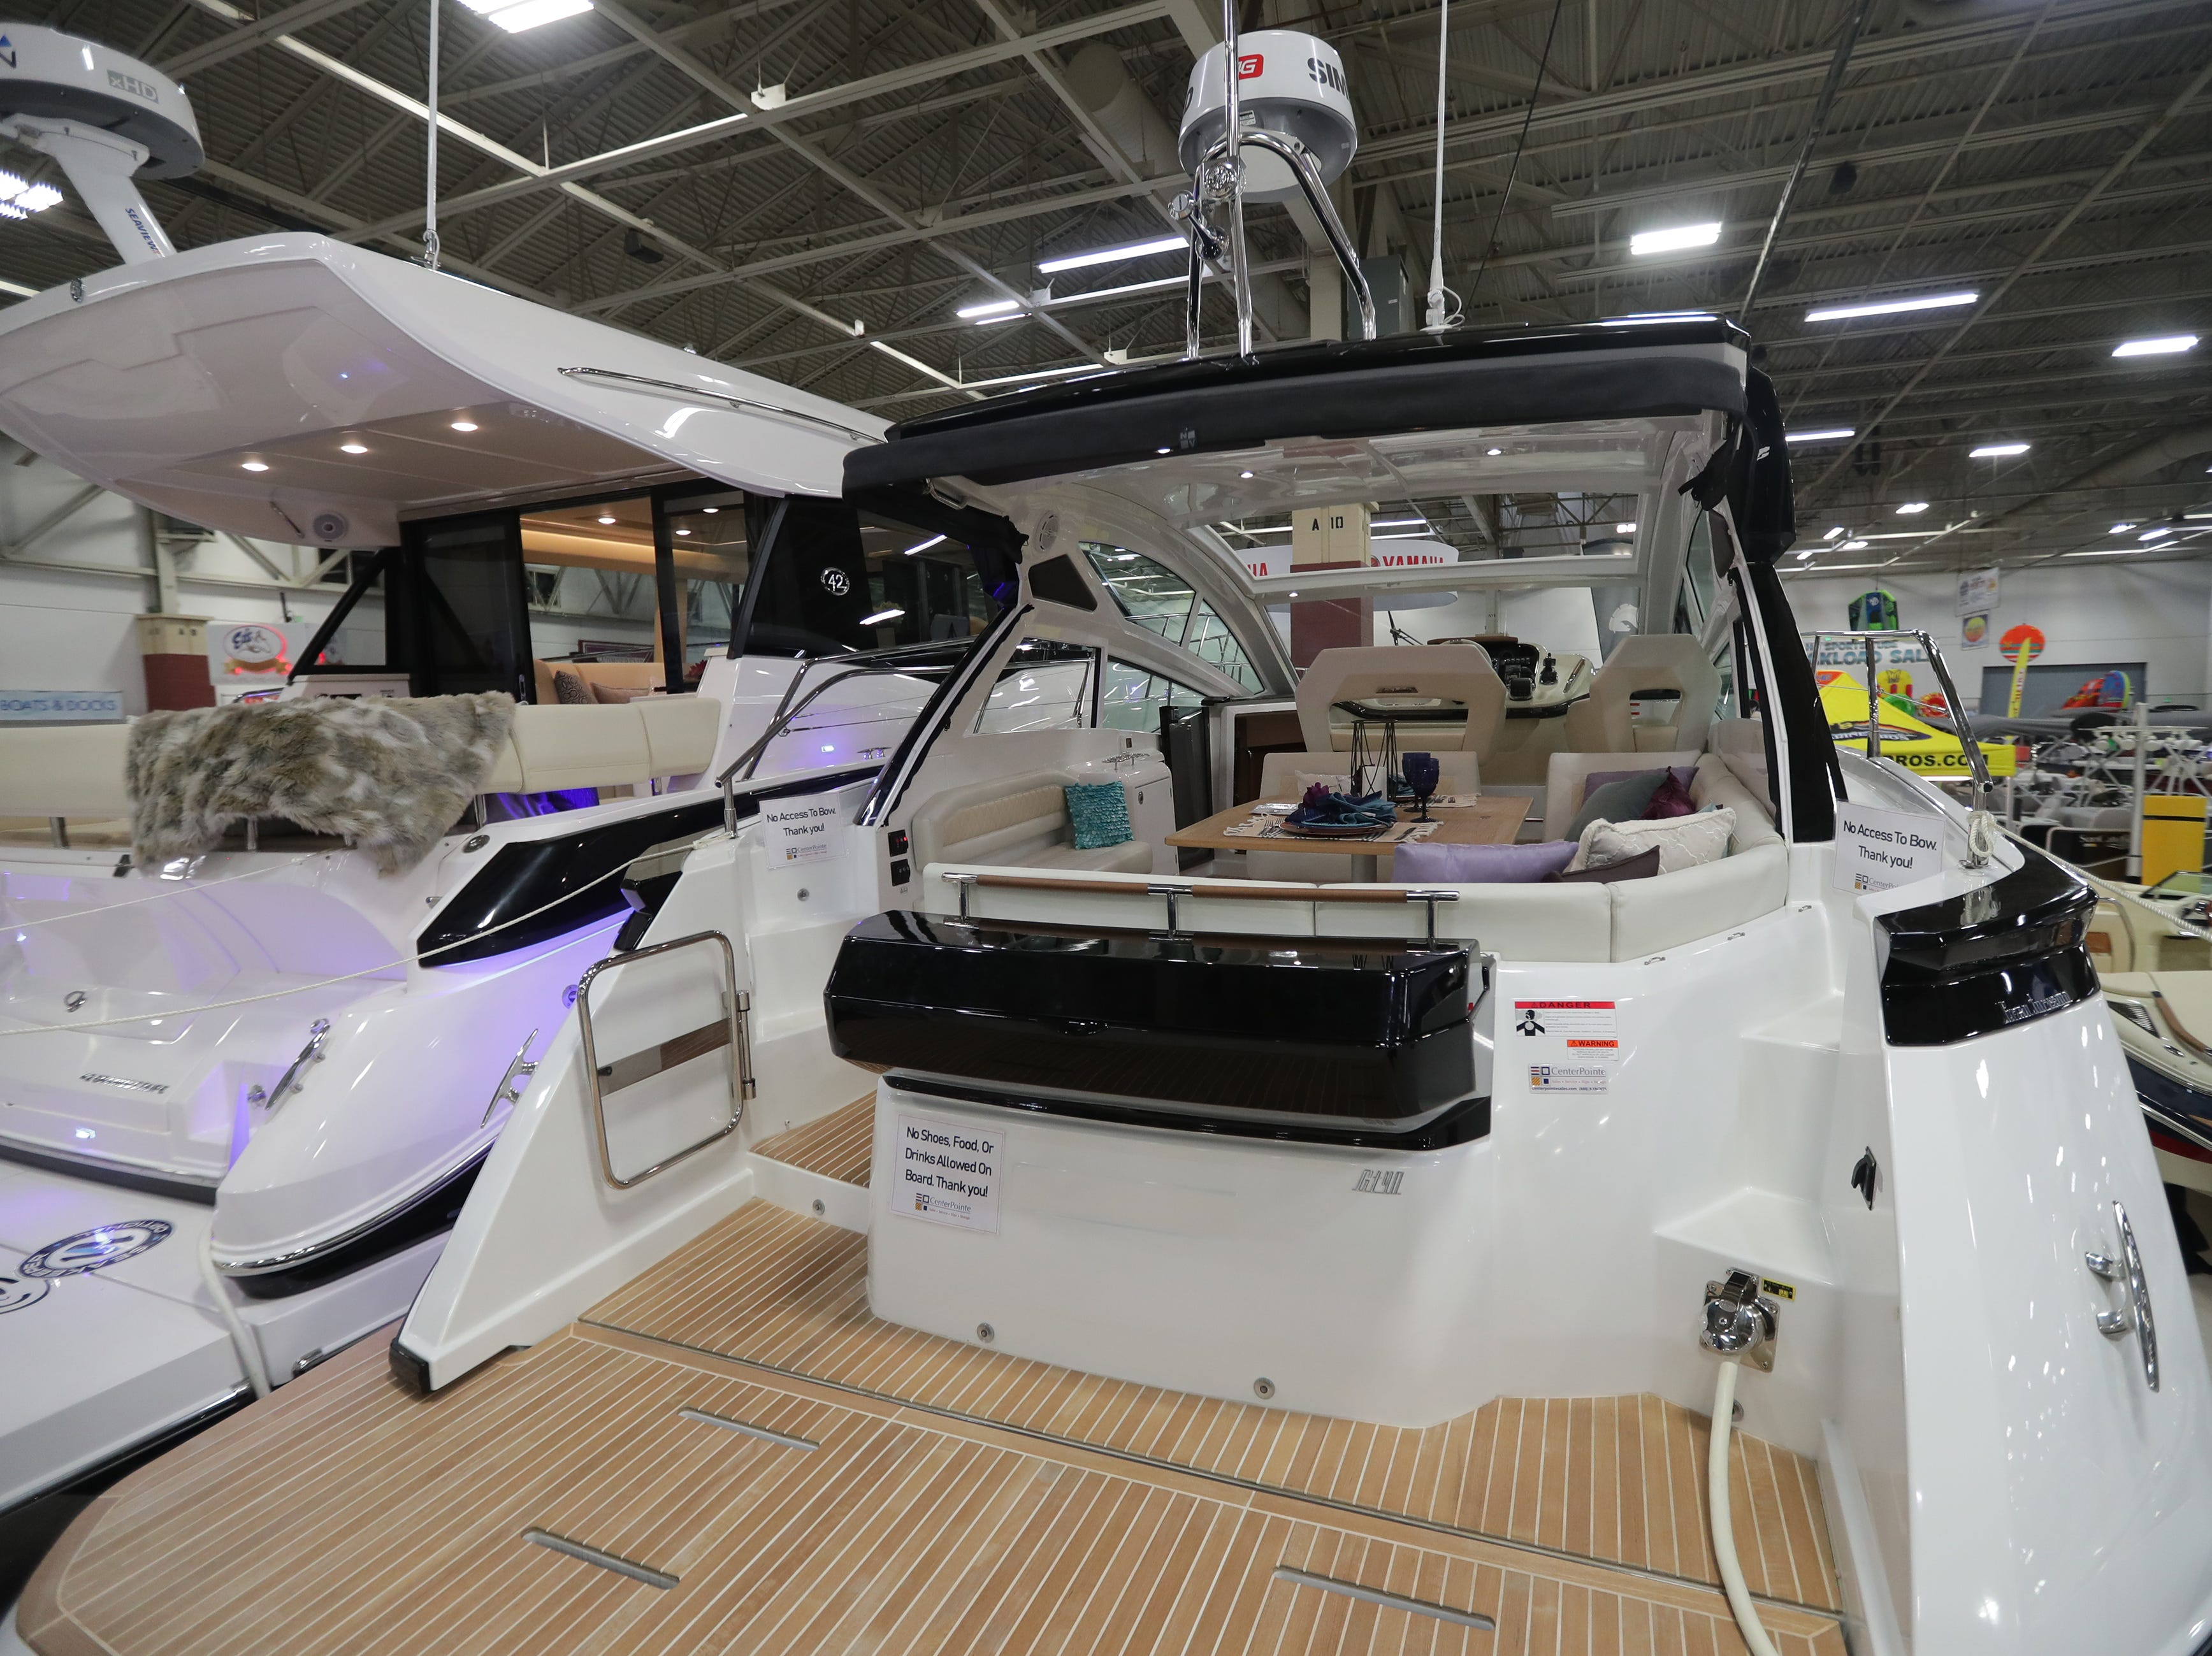 The rear deck of a 2019 40-foot Beneteau yacht, which lists for $500,000.